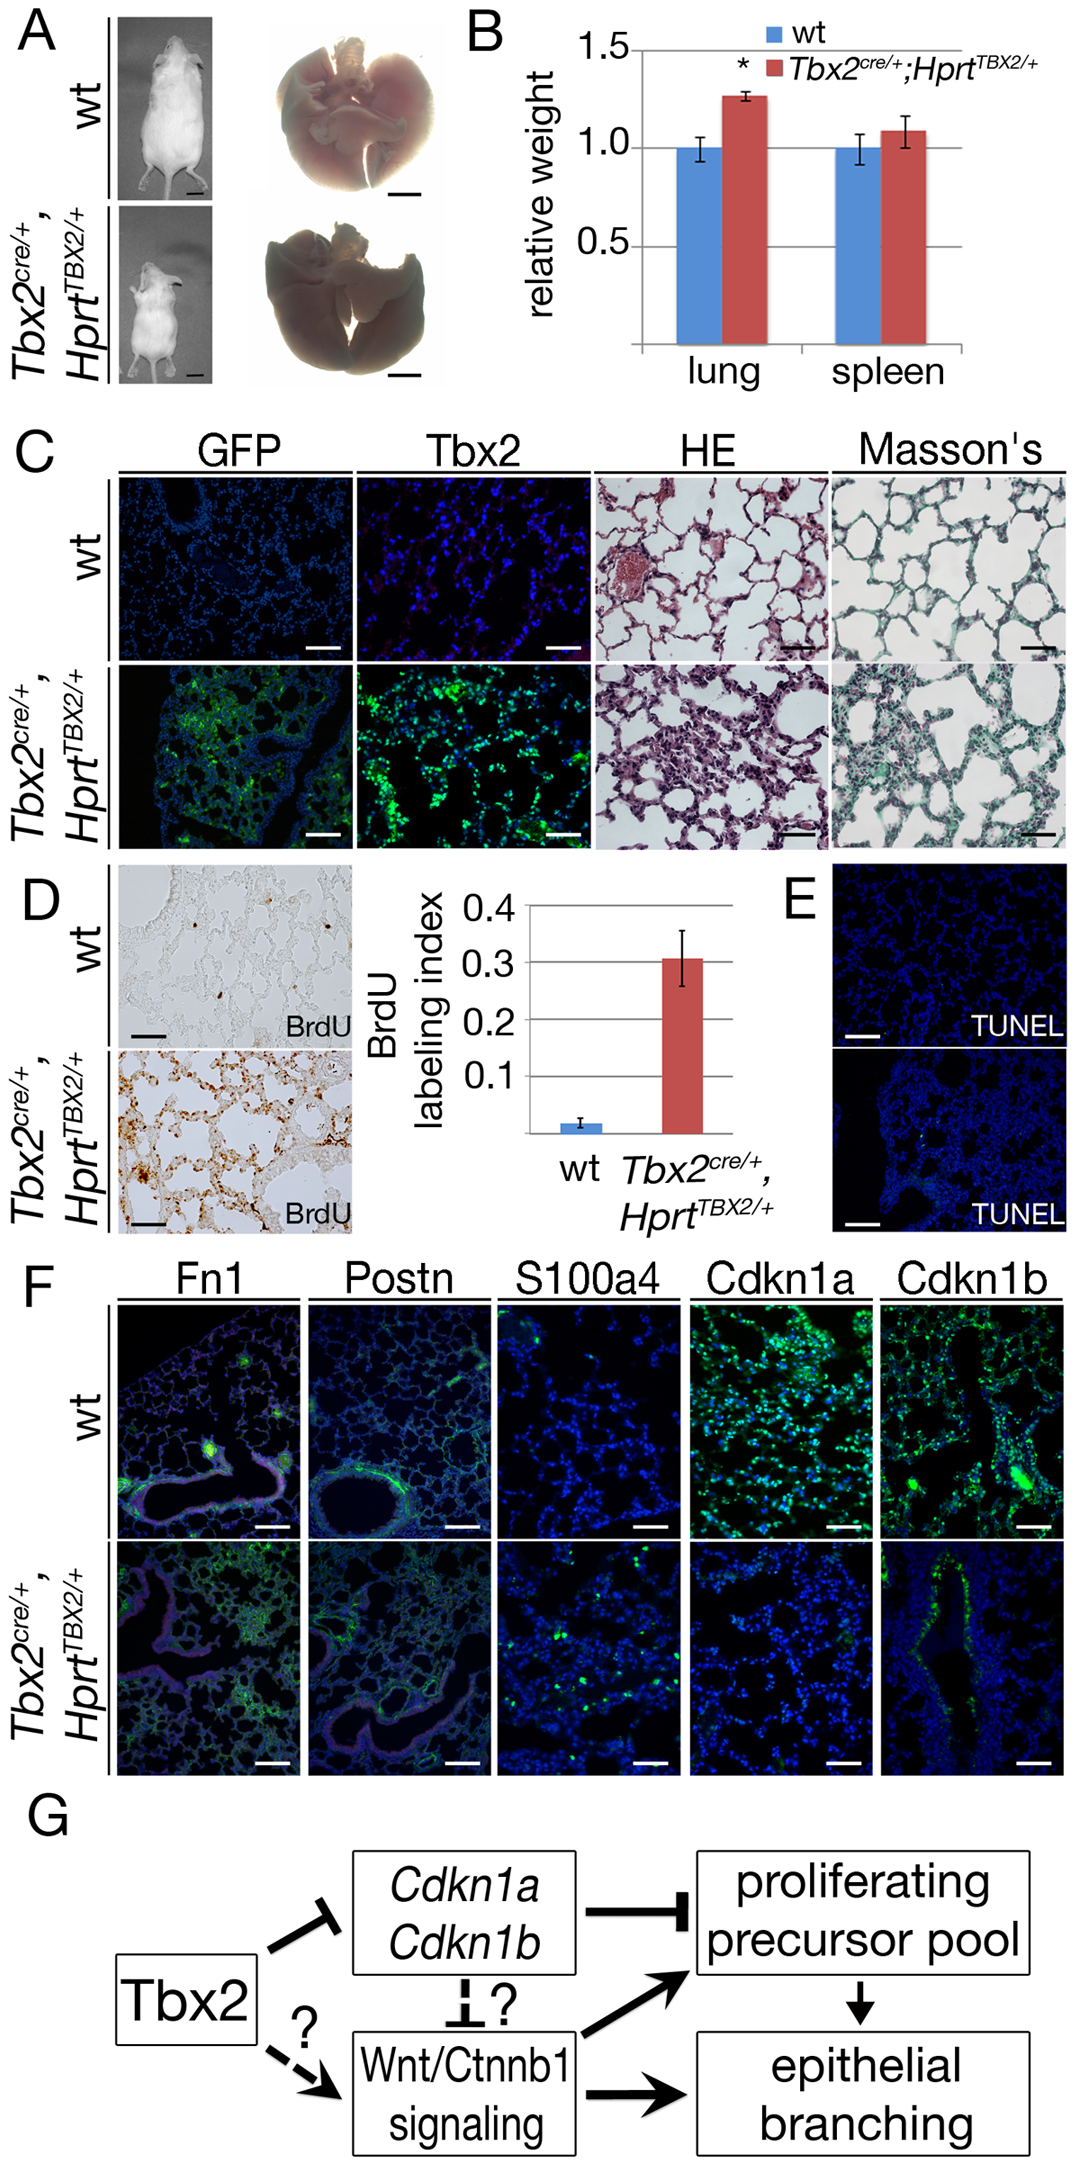 Prolonged expression of TBX2 maintains proliferation of mesenchymal progenitor cells in the adult lung.